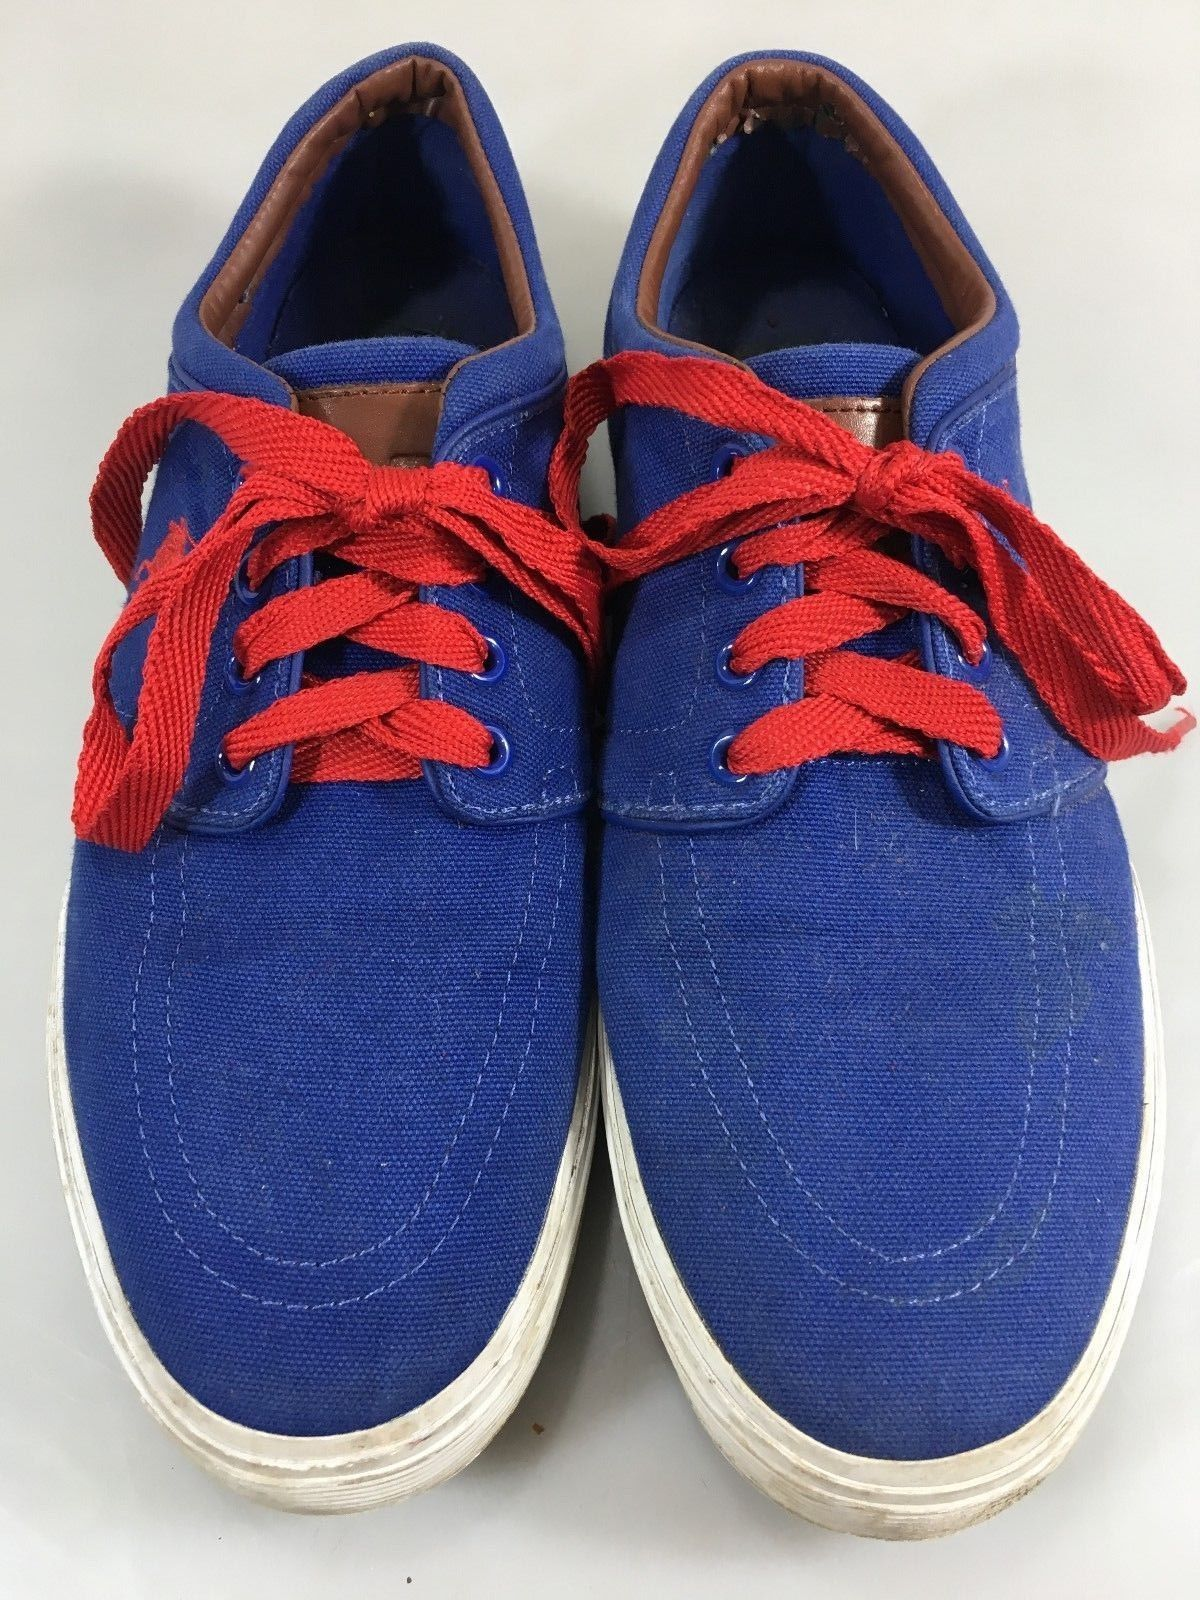 Polo Ralph Lauren Mens 9.5D Faxon Blue Canvas Red Laces Gym Shoes Sneakers